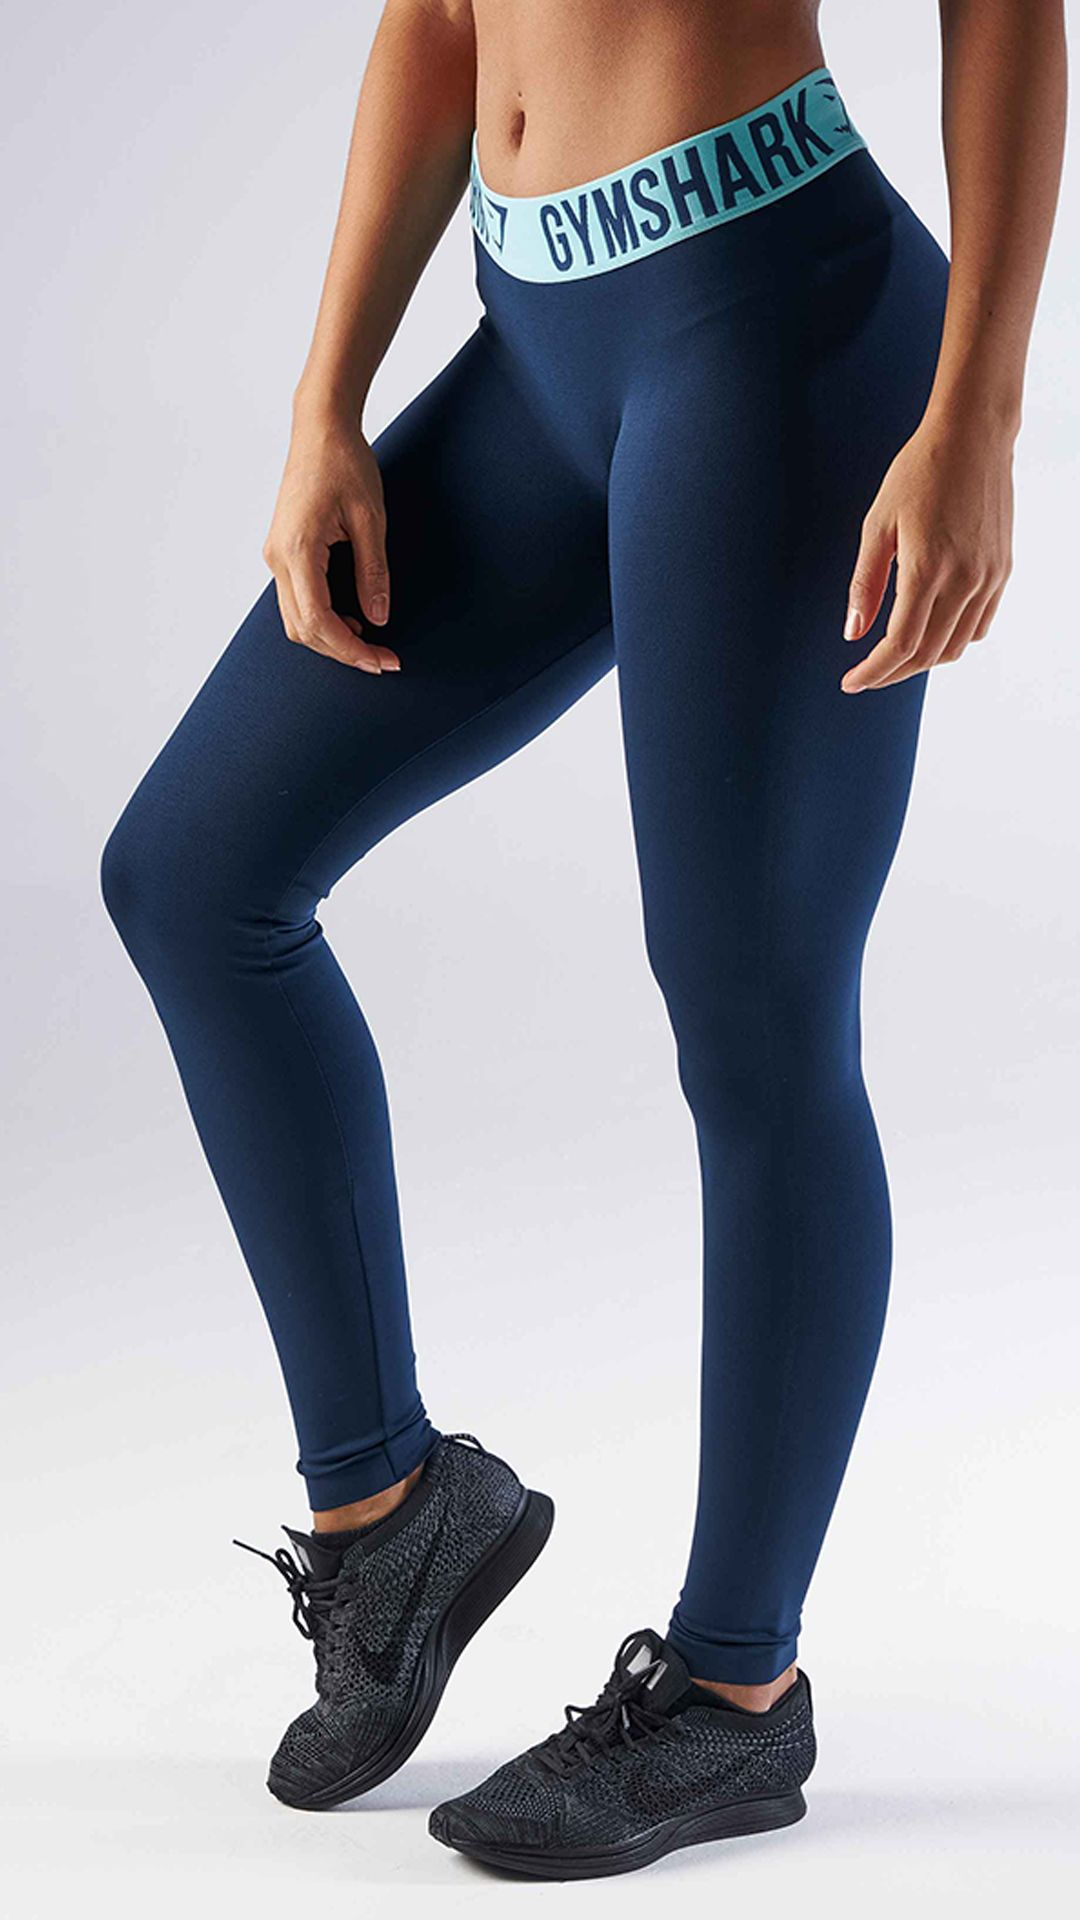 0fd5285dcc510 The Gymshark Fit Leggings are your new favourite leggings. A simple design  available in stylish seasonal colours, made with soft fabrics for a  stretchy, ...